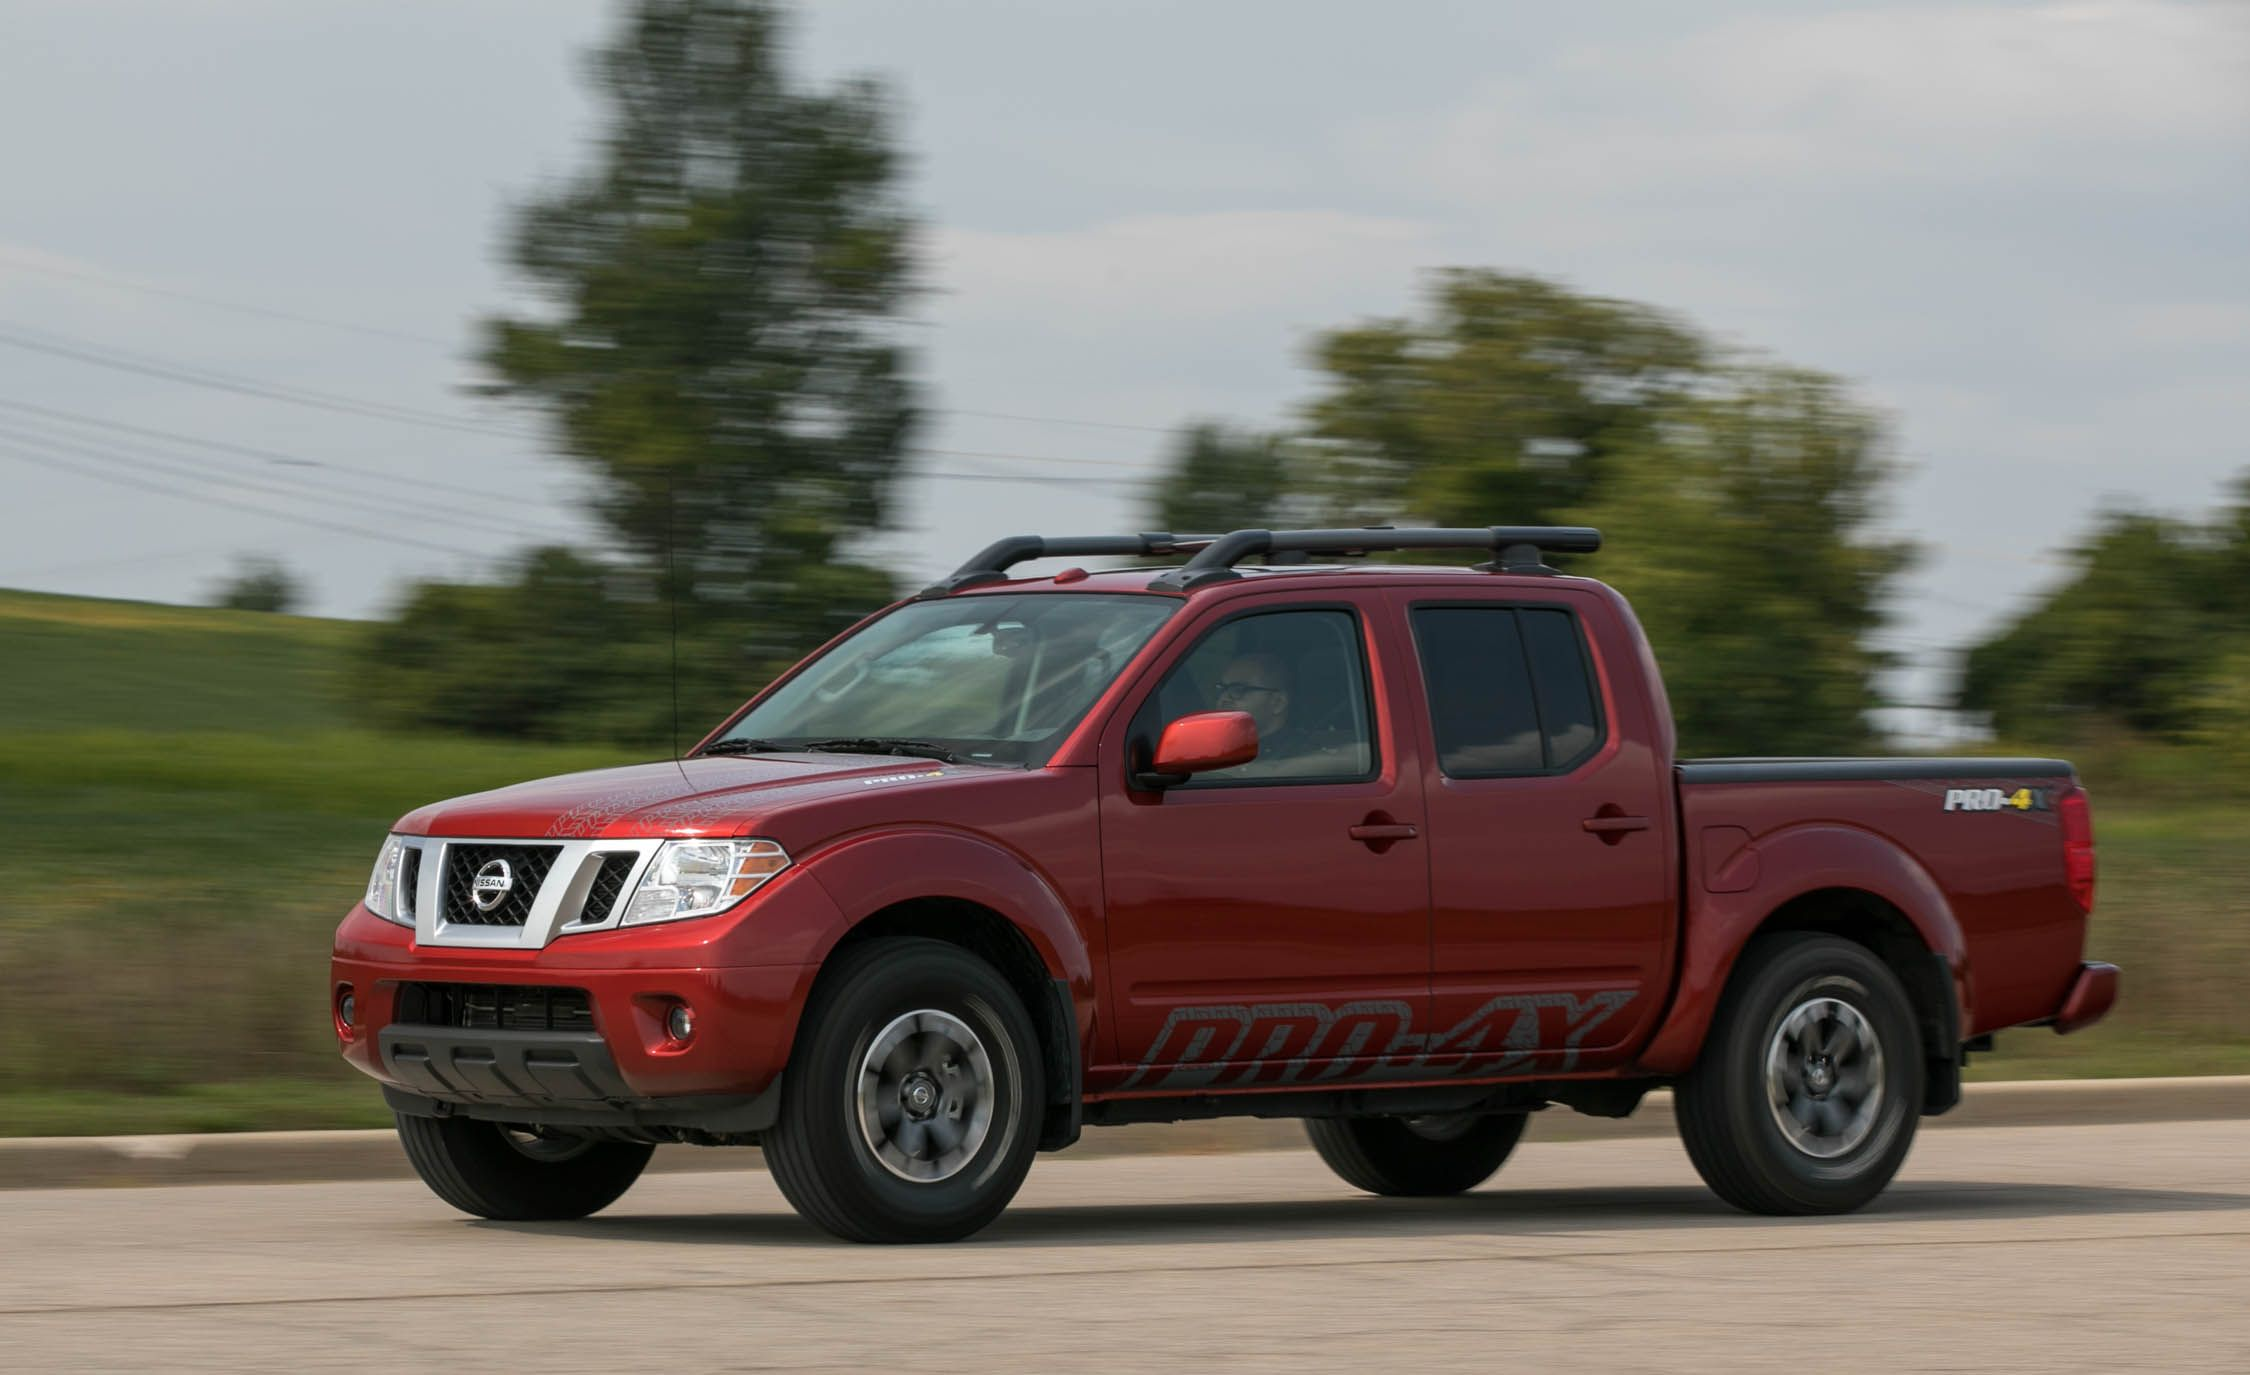 Nissan Frontier Reviews | Nissan Frontier Price Photos and Specs | Car and Driver & Nissan Frontier Reviews | Nissan Frontier Price Photos and Specs ...